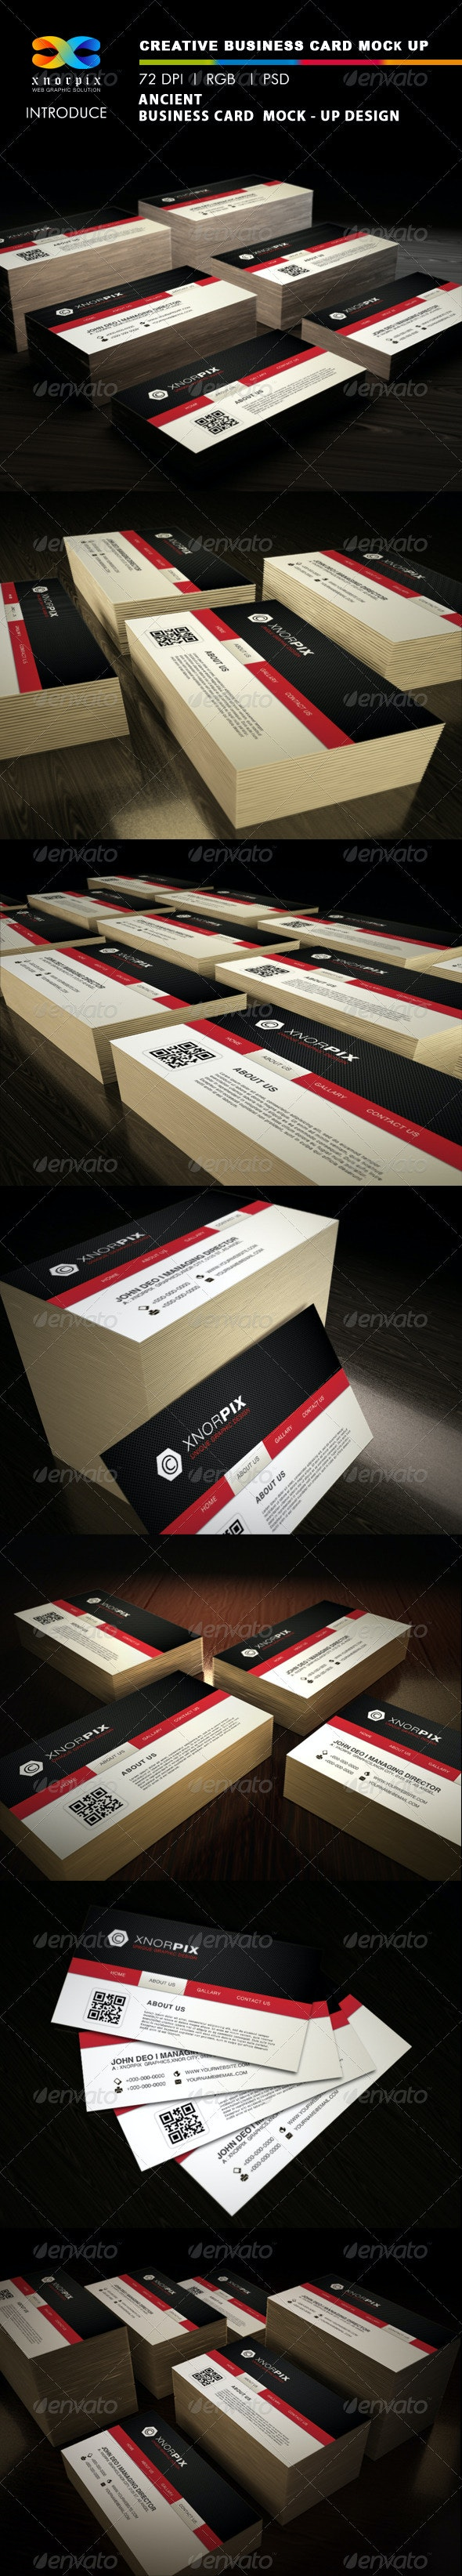 Ancient Business Card Mock-up - Business Cards Print